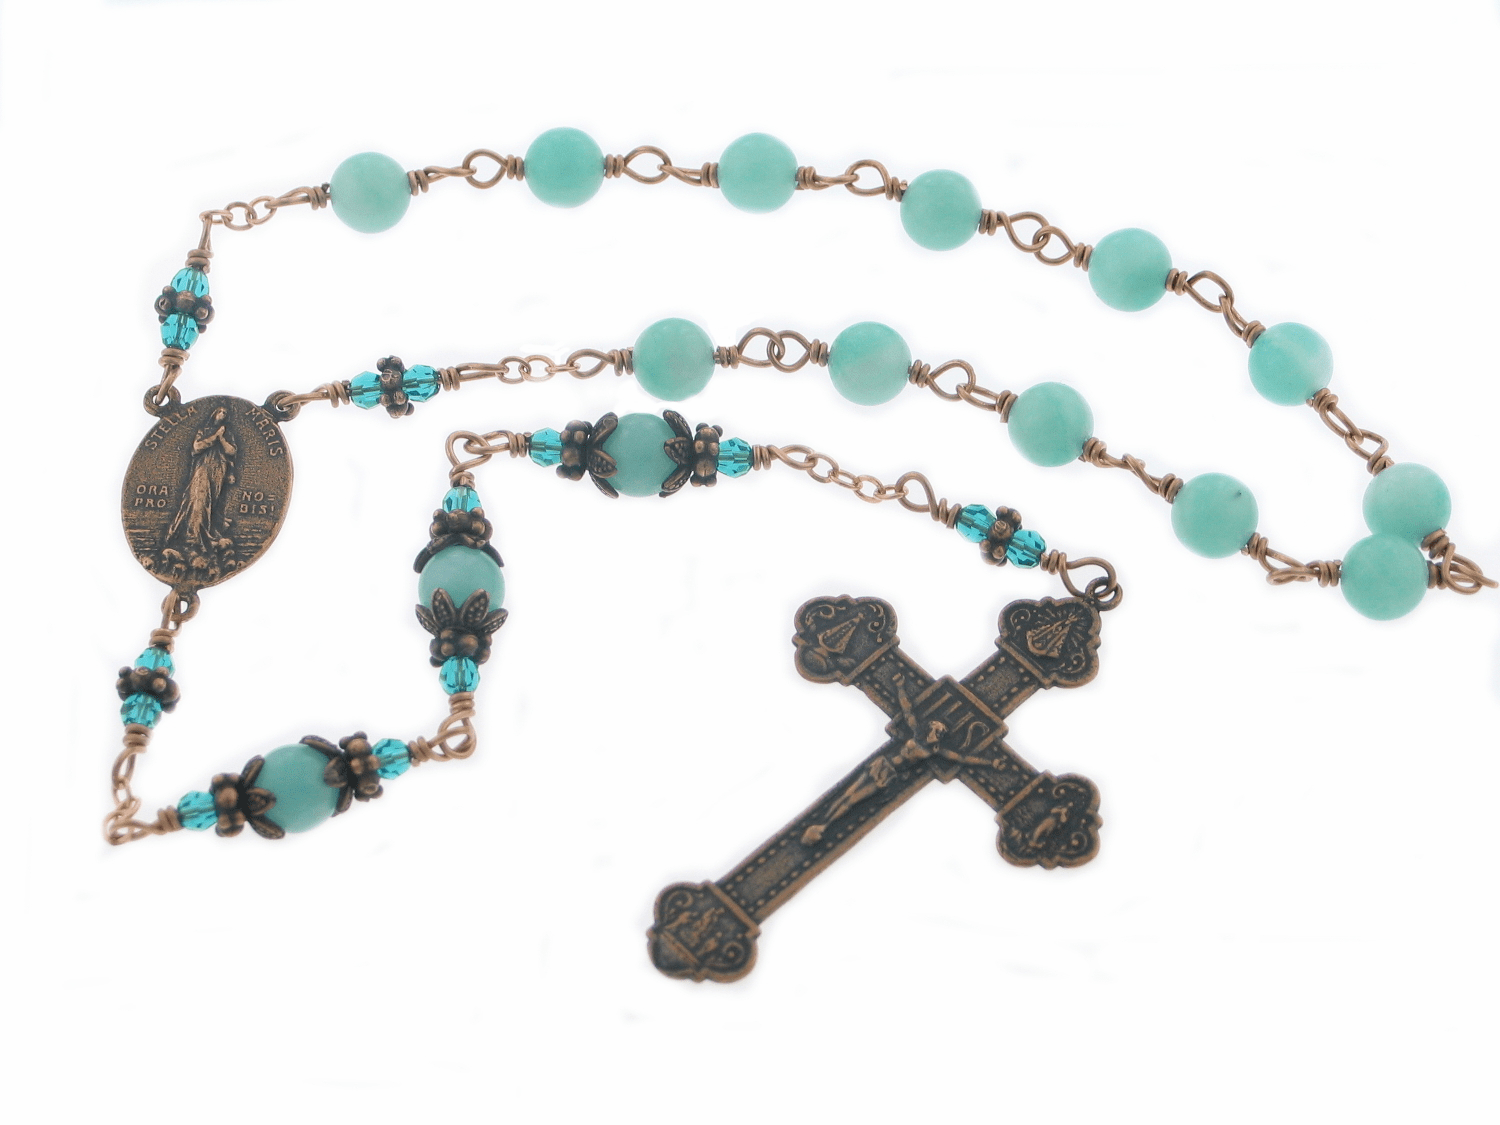 Bronze Stella Maris Our Lady Star of the Sea Chaplet Rosary